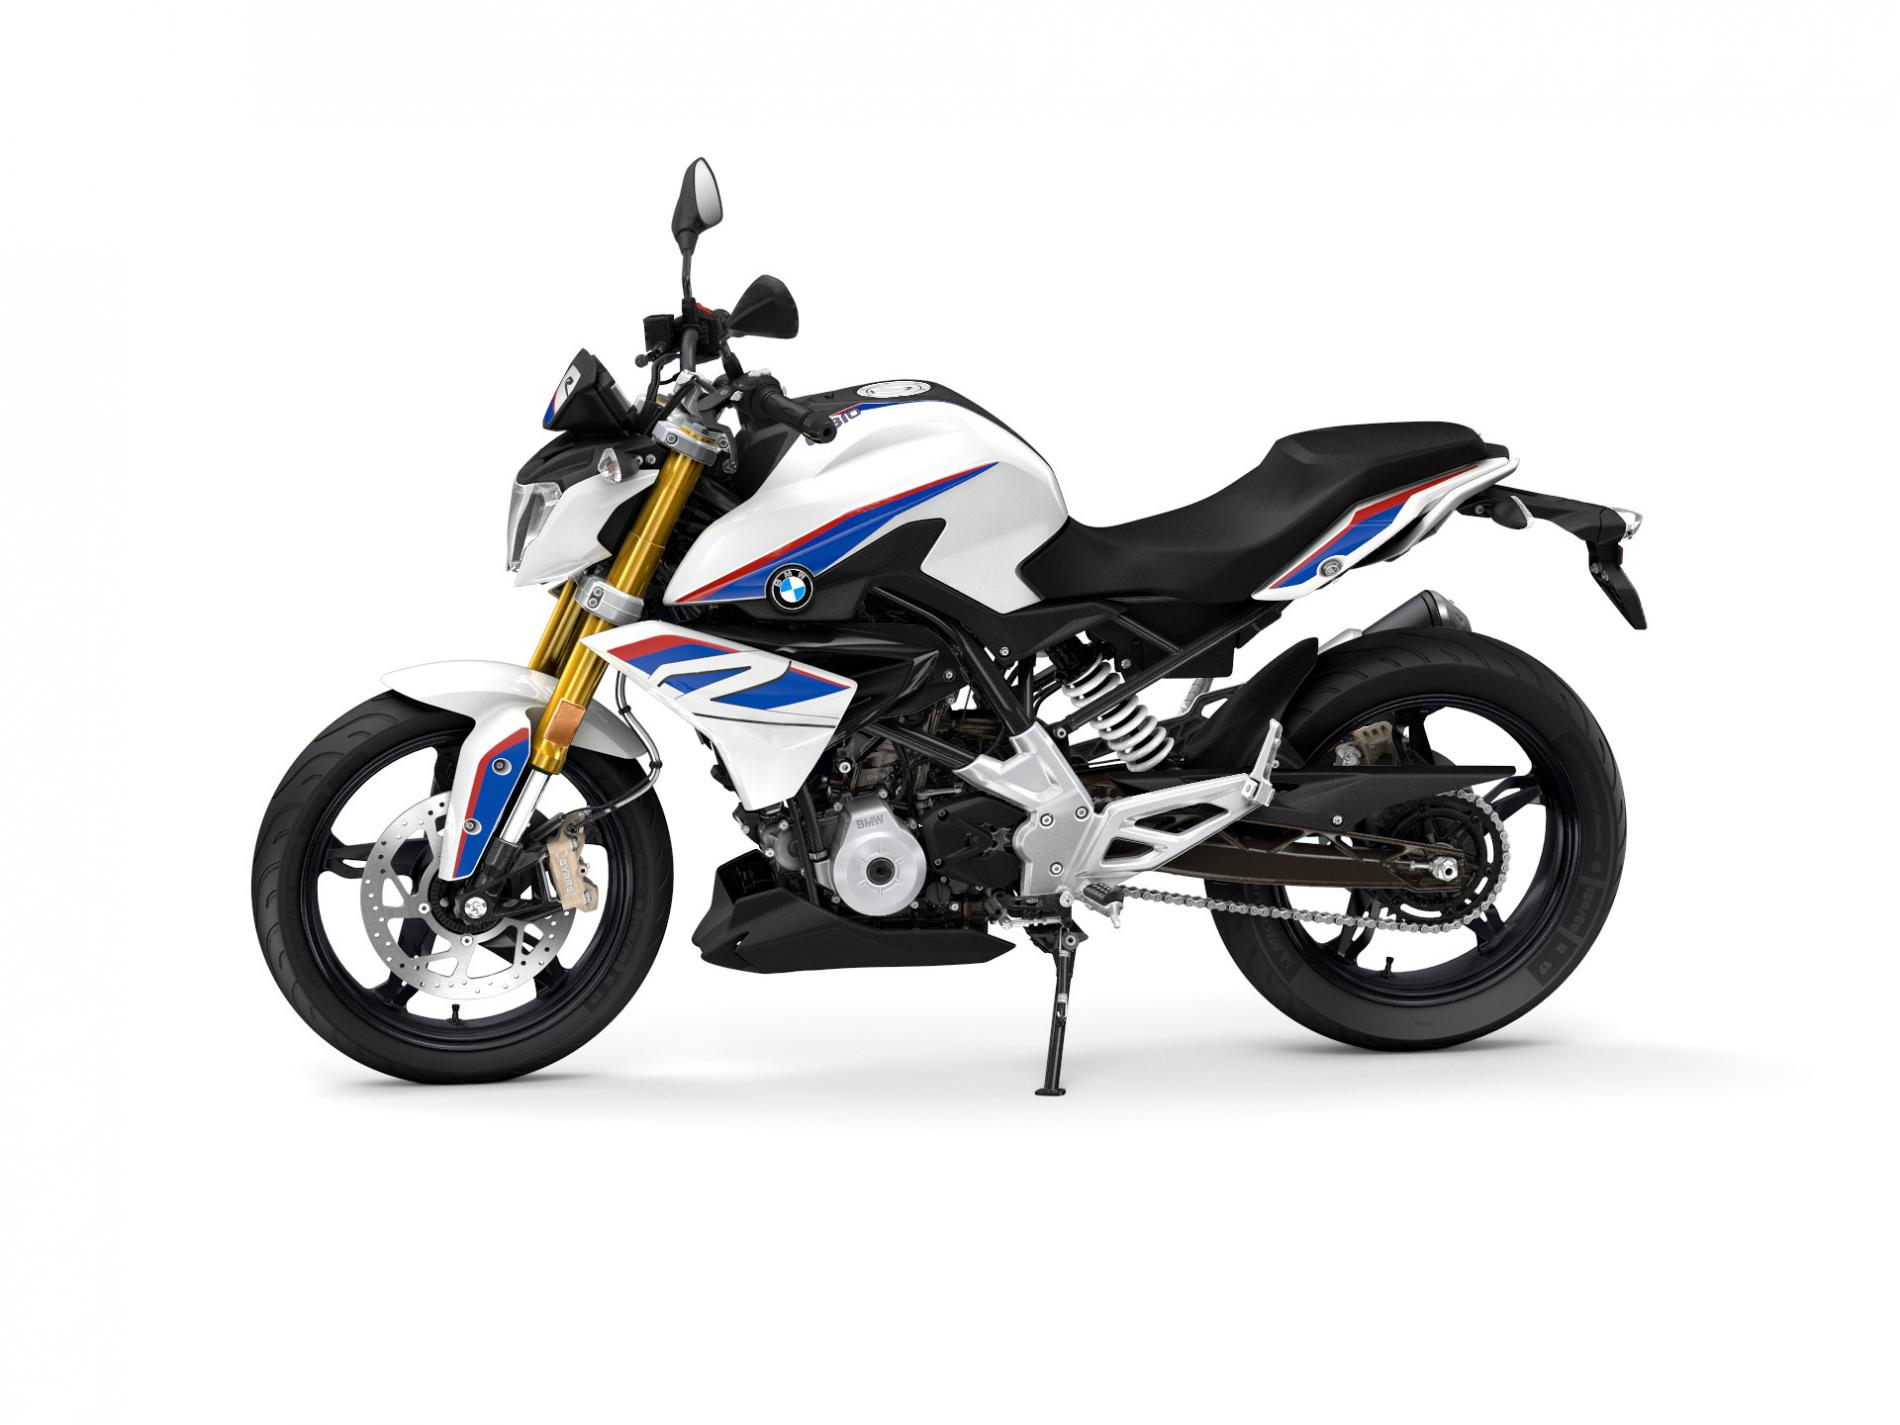 Nouvelle BMW G310R - medium